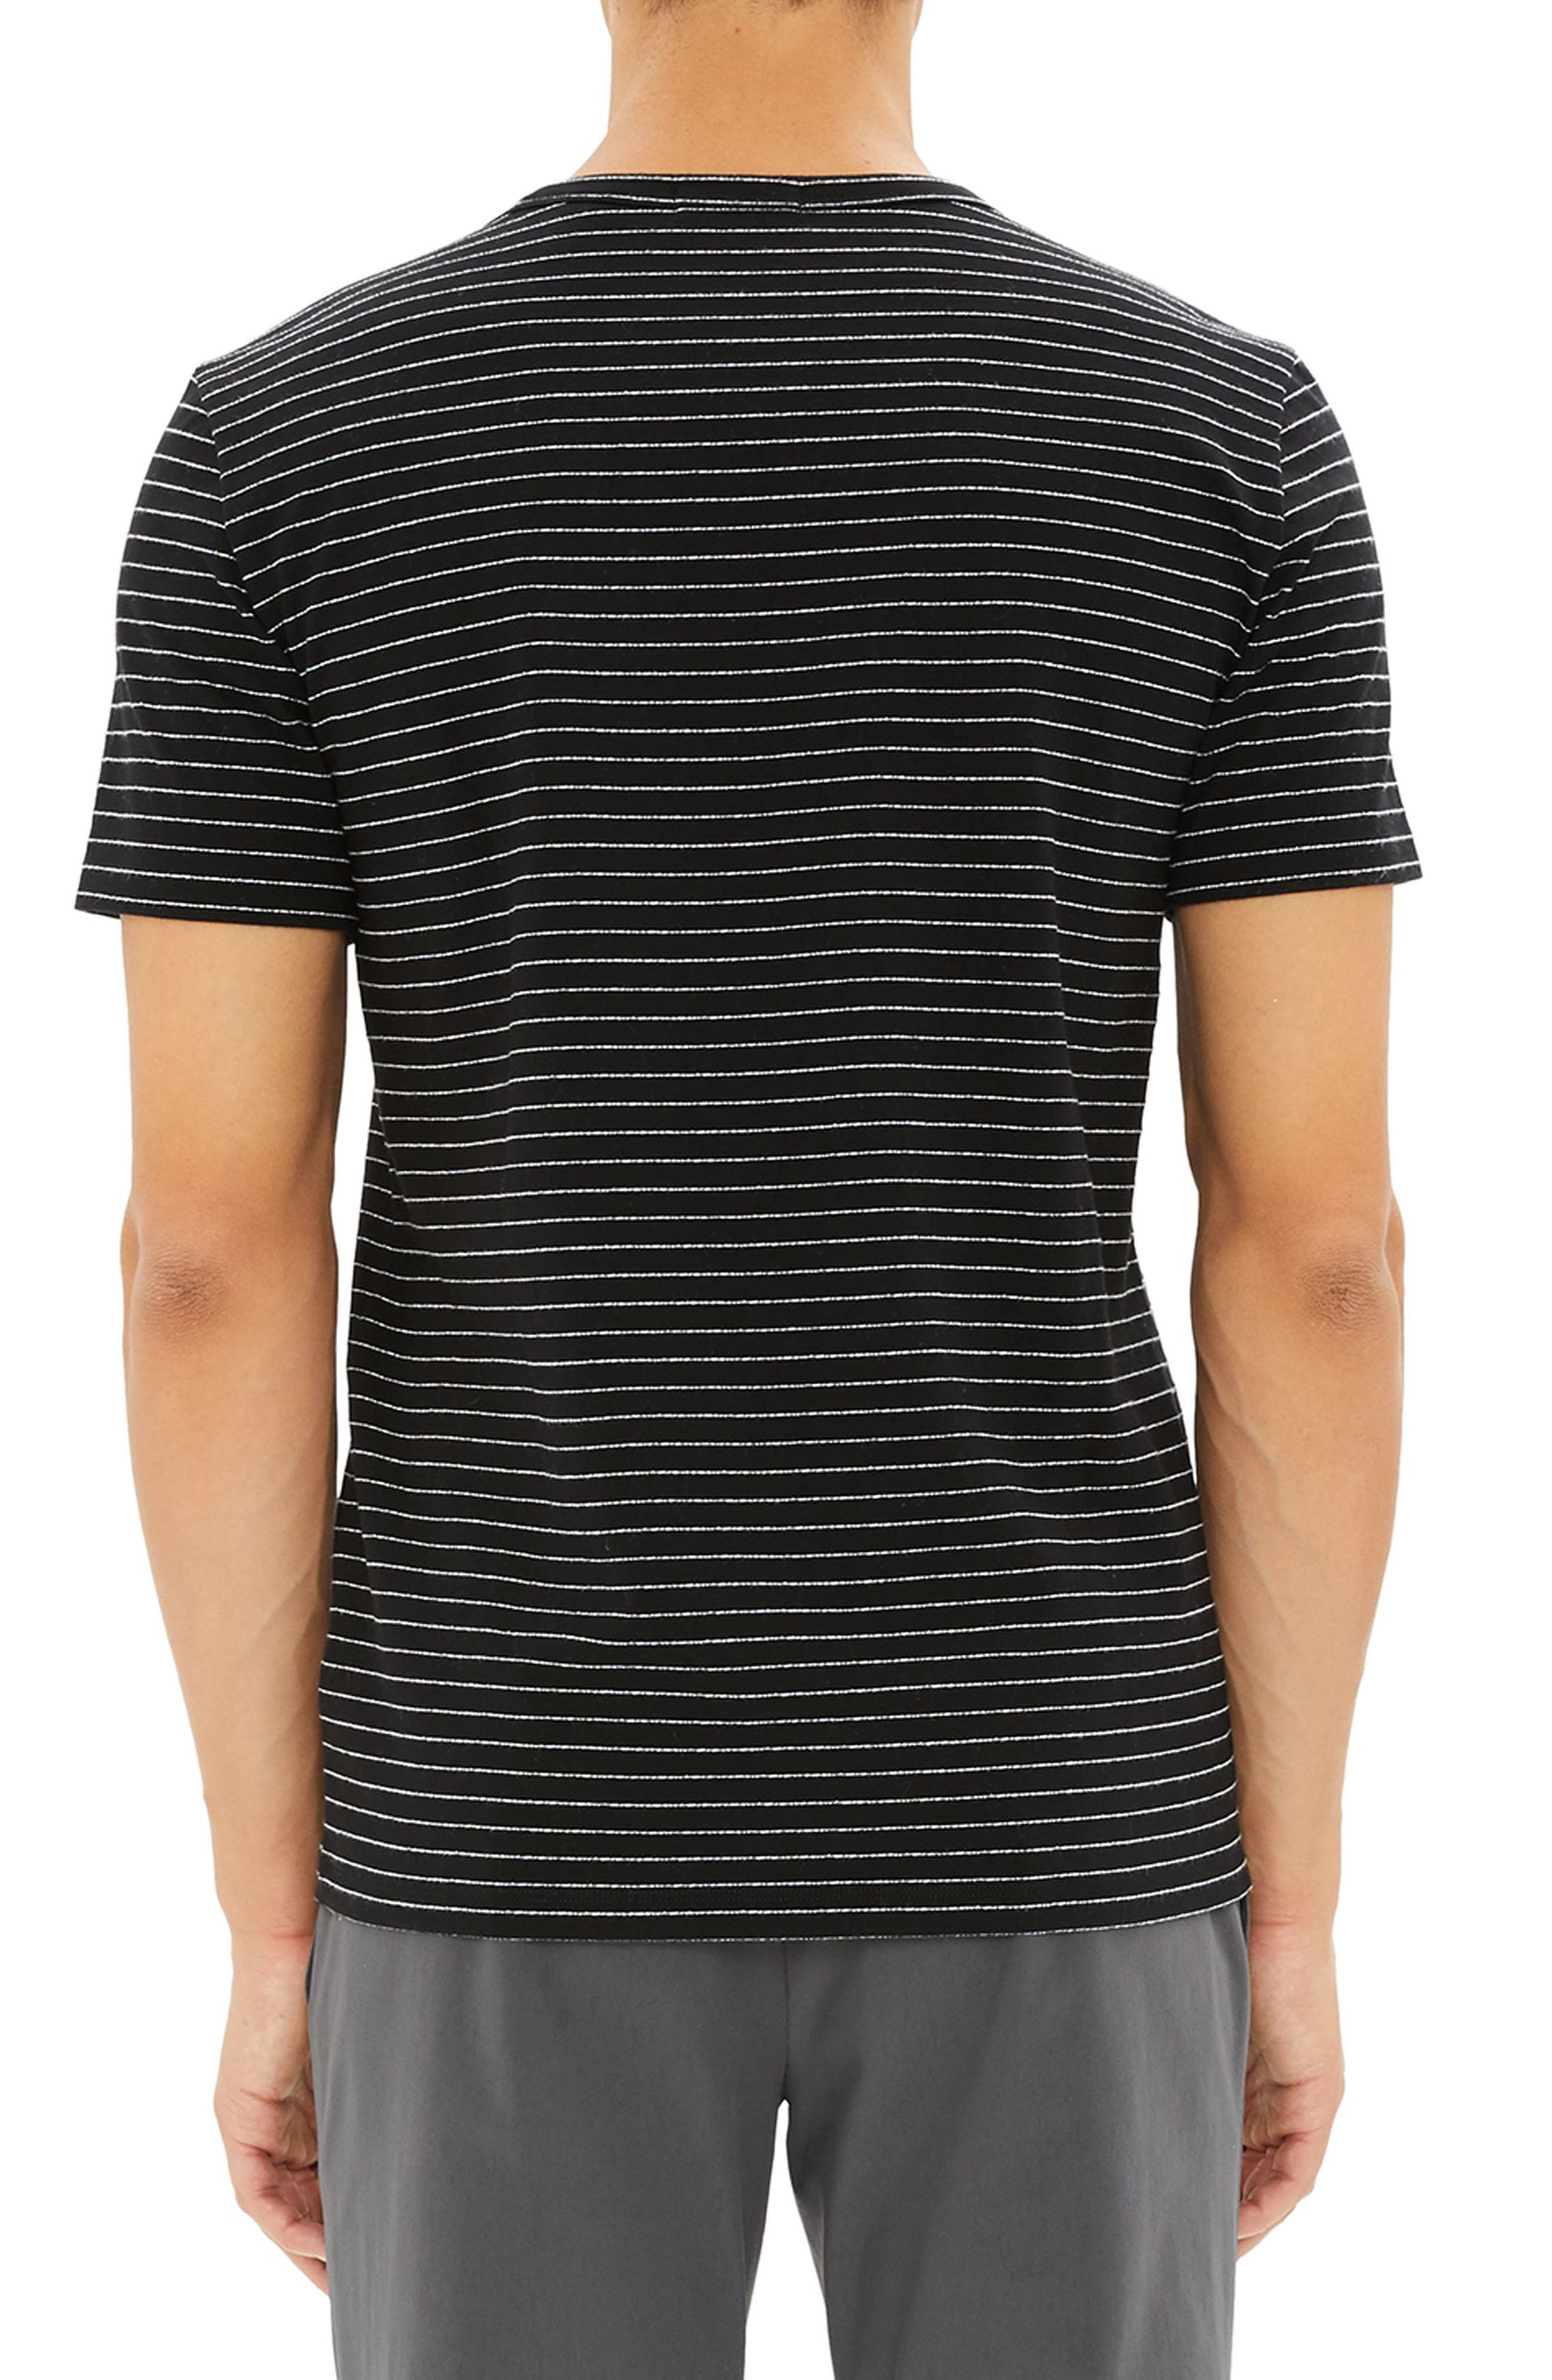 THEORY,                             Essential Striped T-Shirt,                             Alternate thumbnail 2, color,                             009